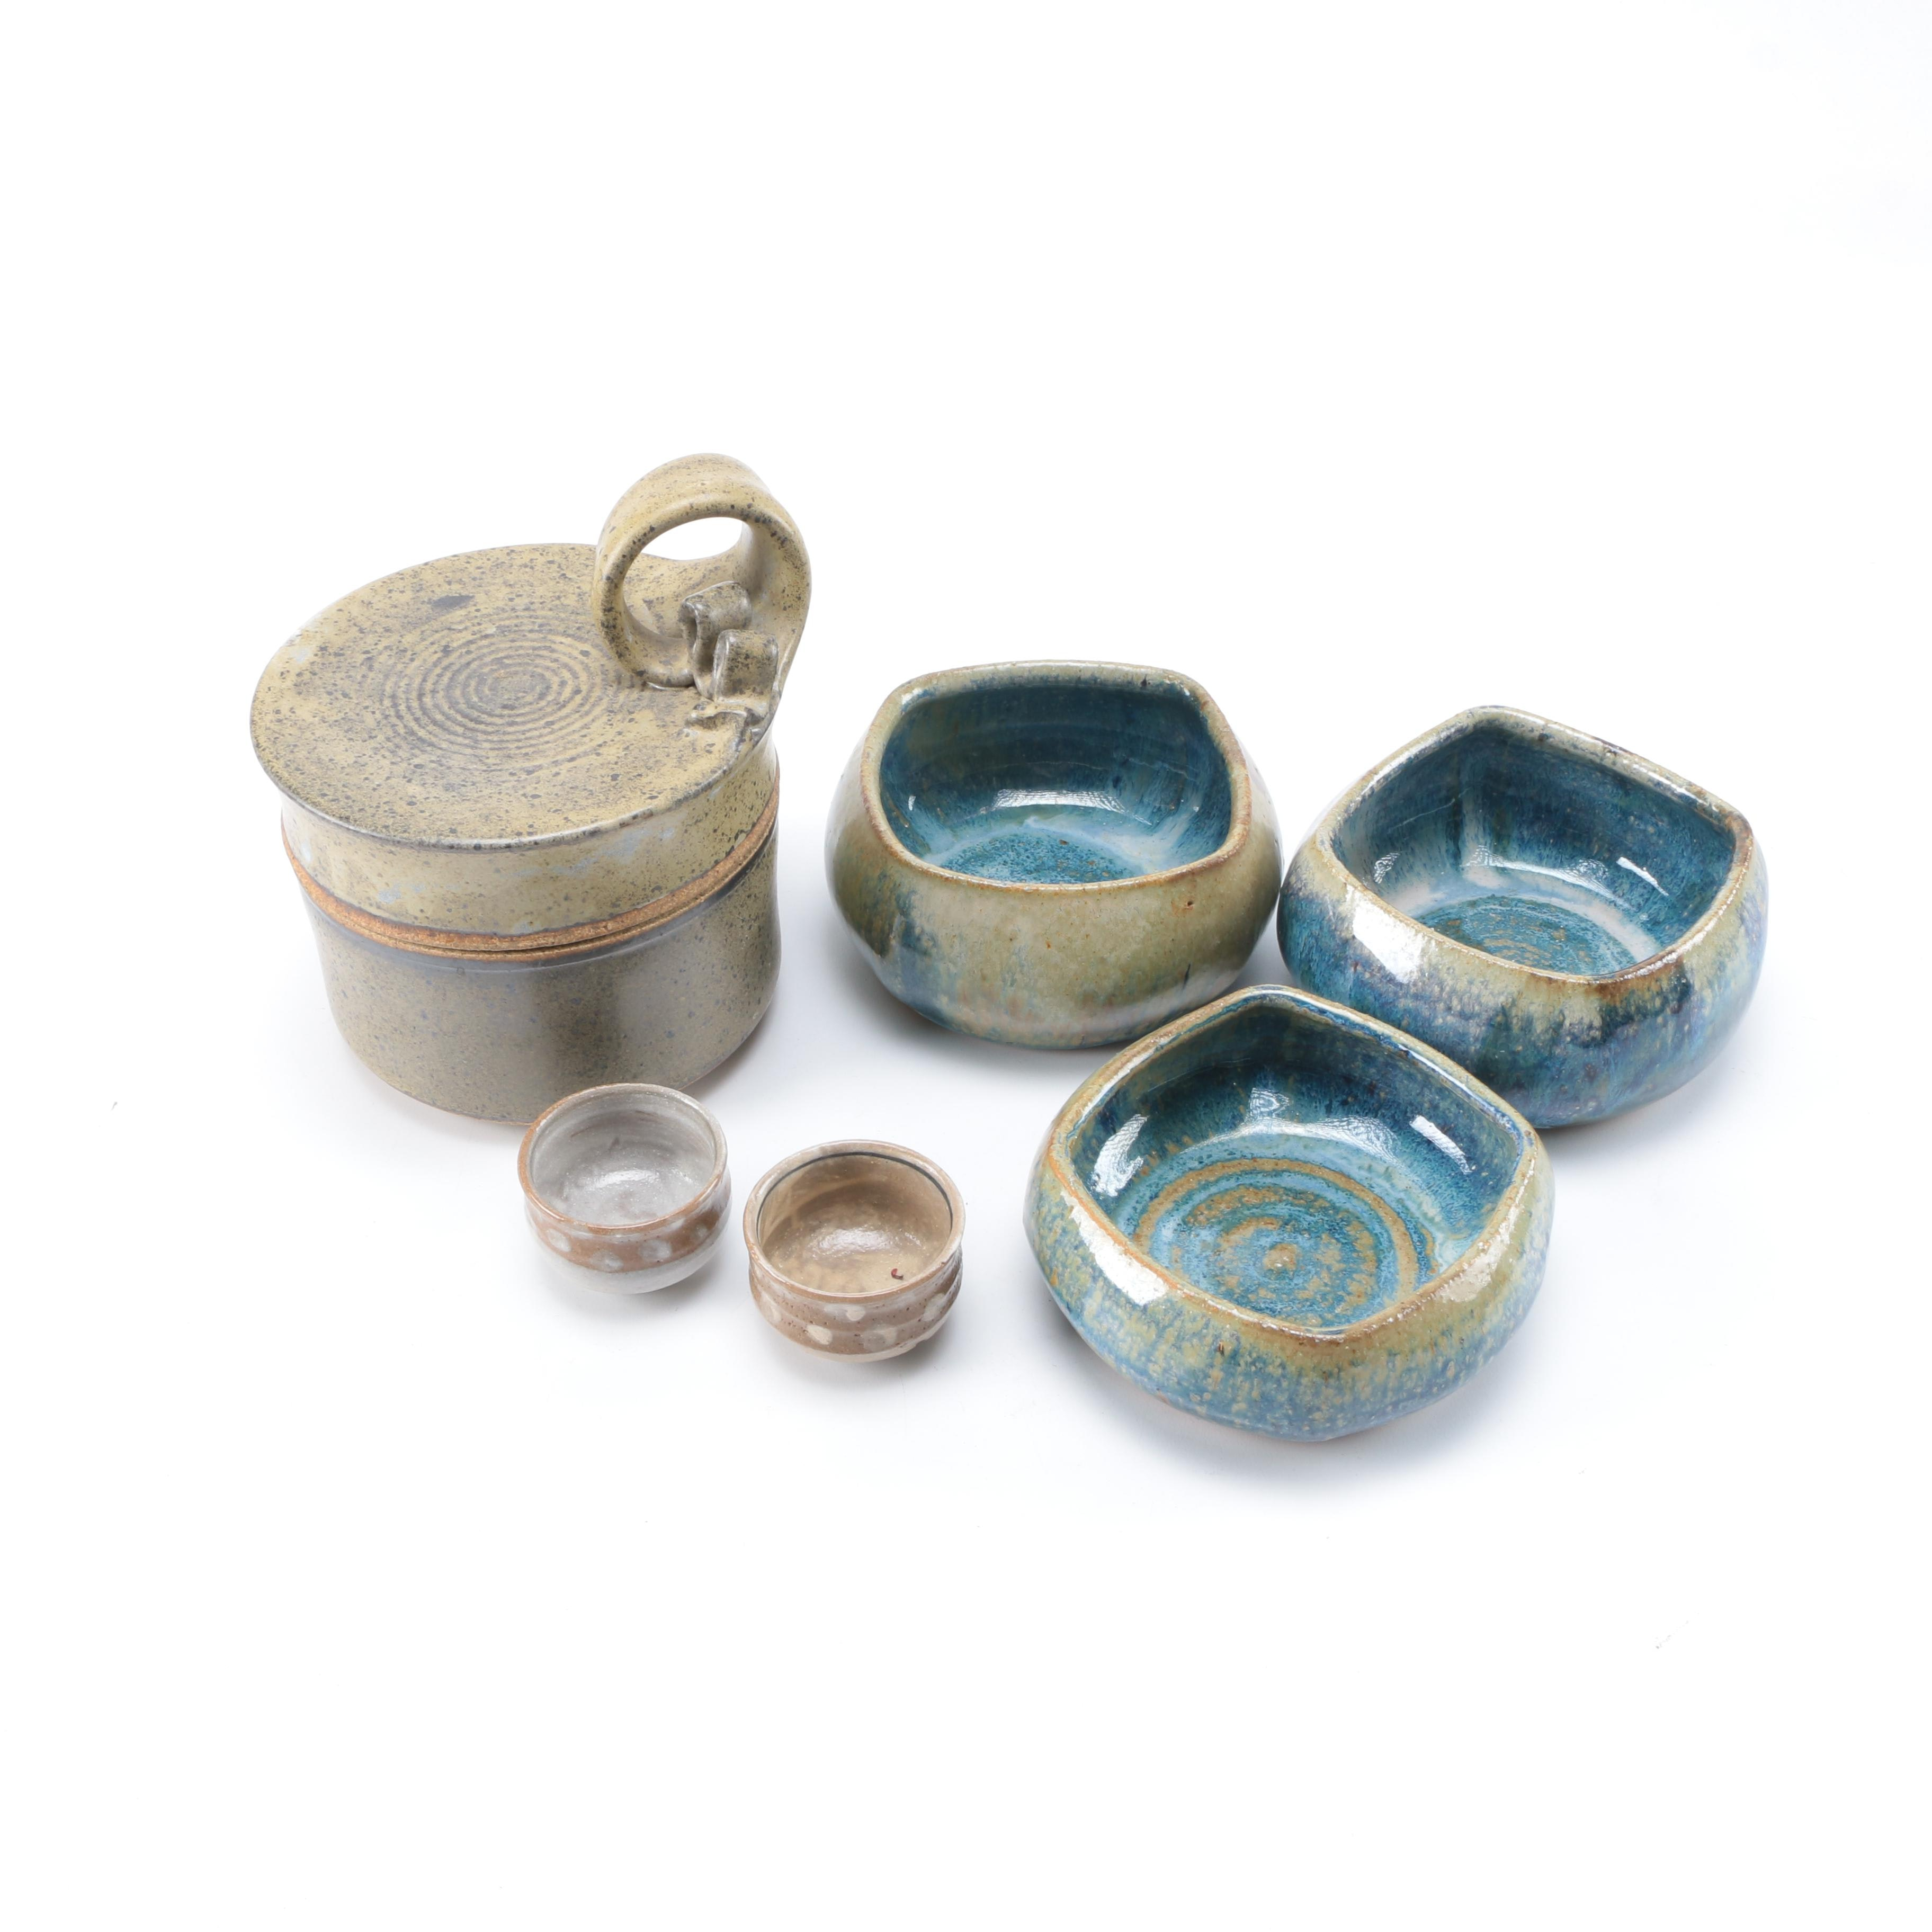 Assorted Art Pottery Vessels